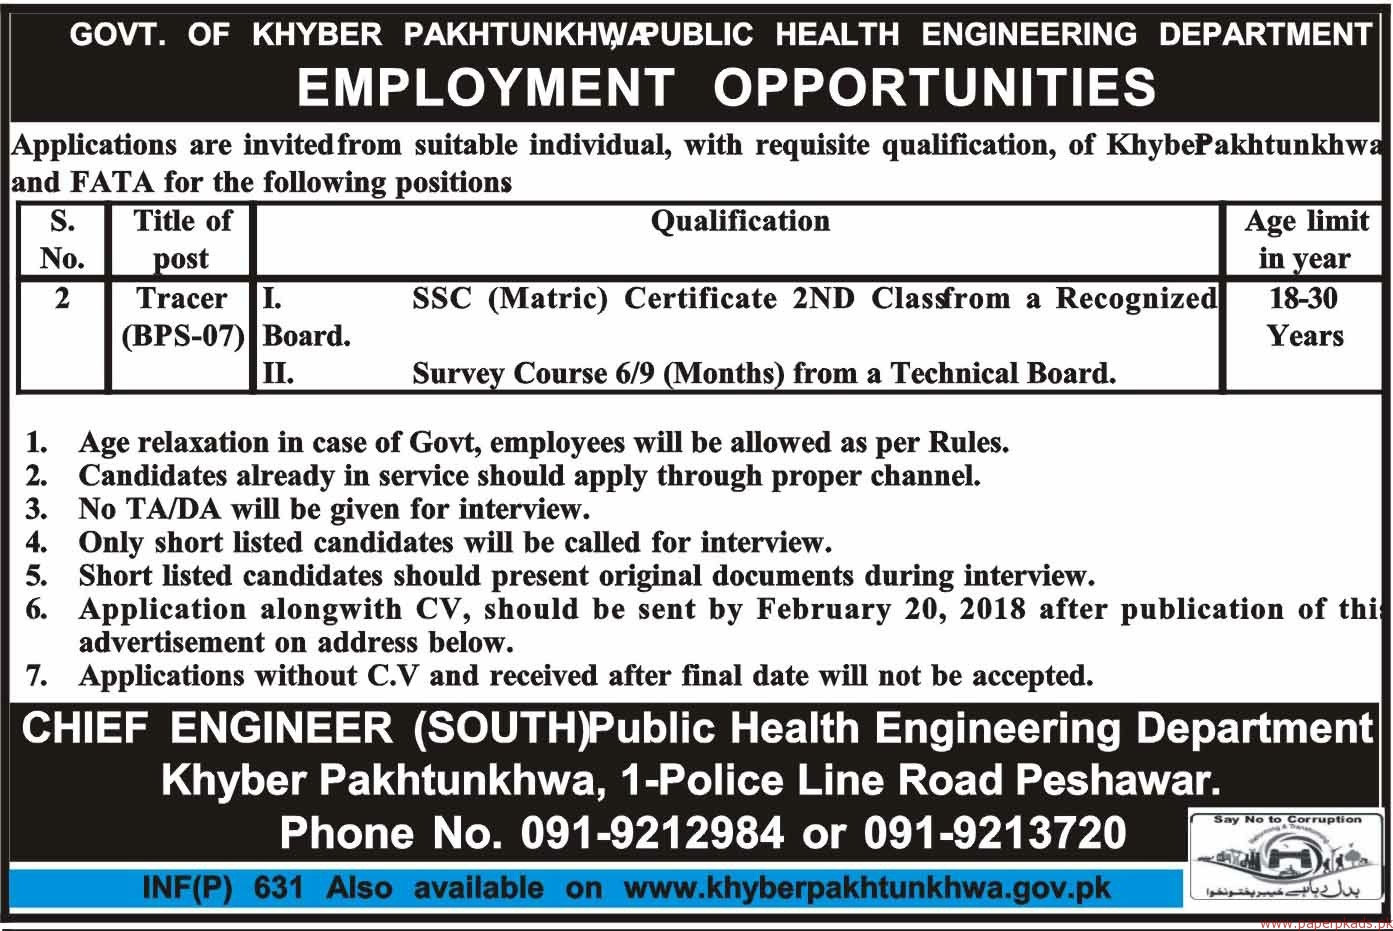 Government of Khyber Pakhtunkhwa - Public Health Engineering Department Jobs 2018